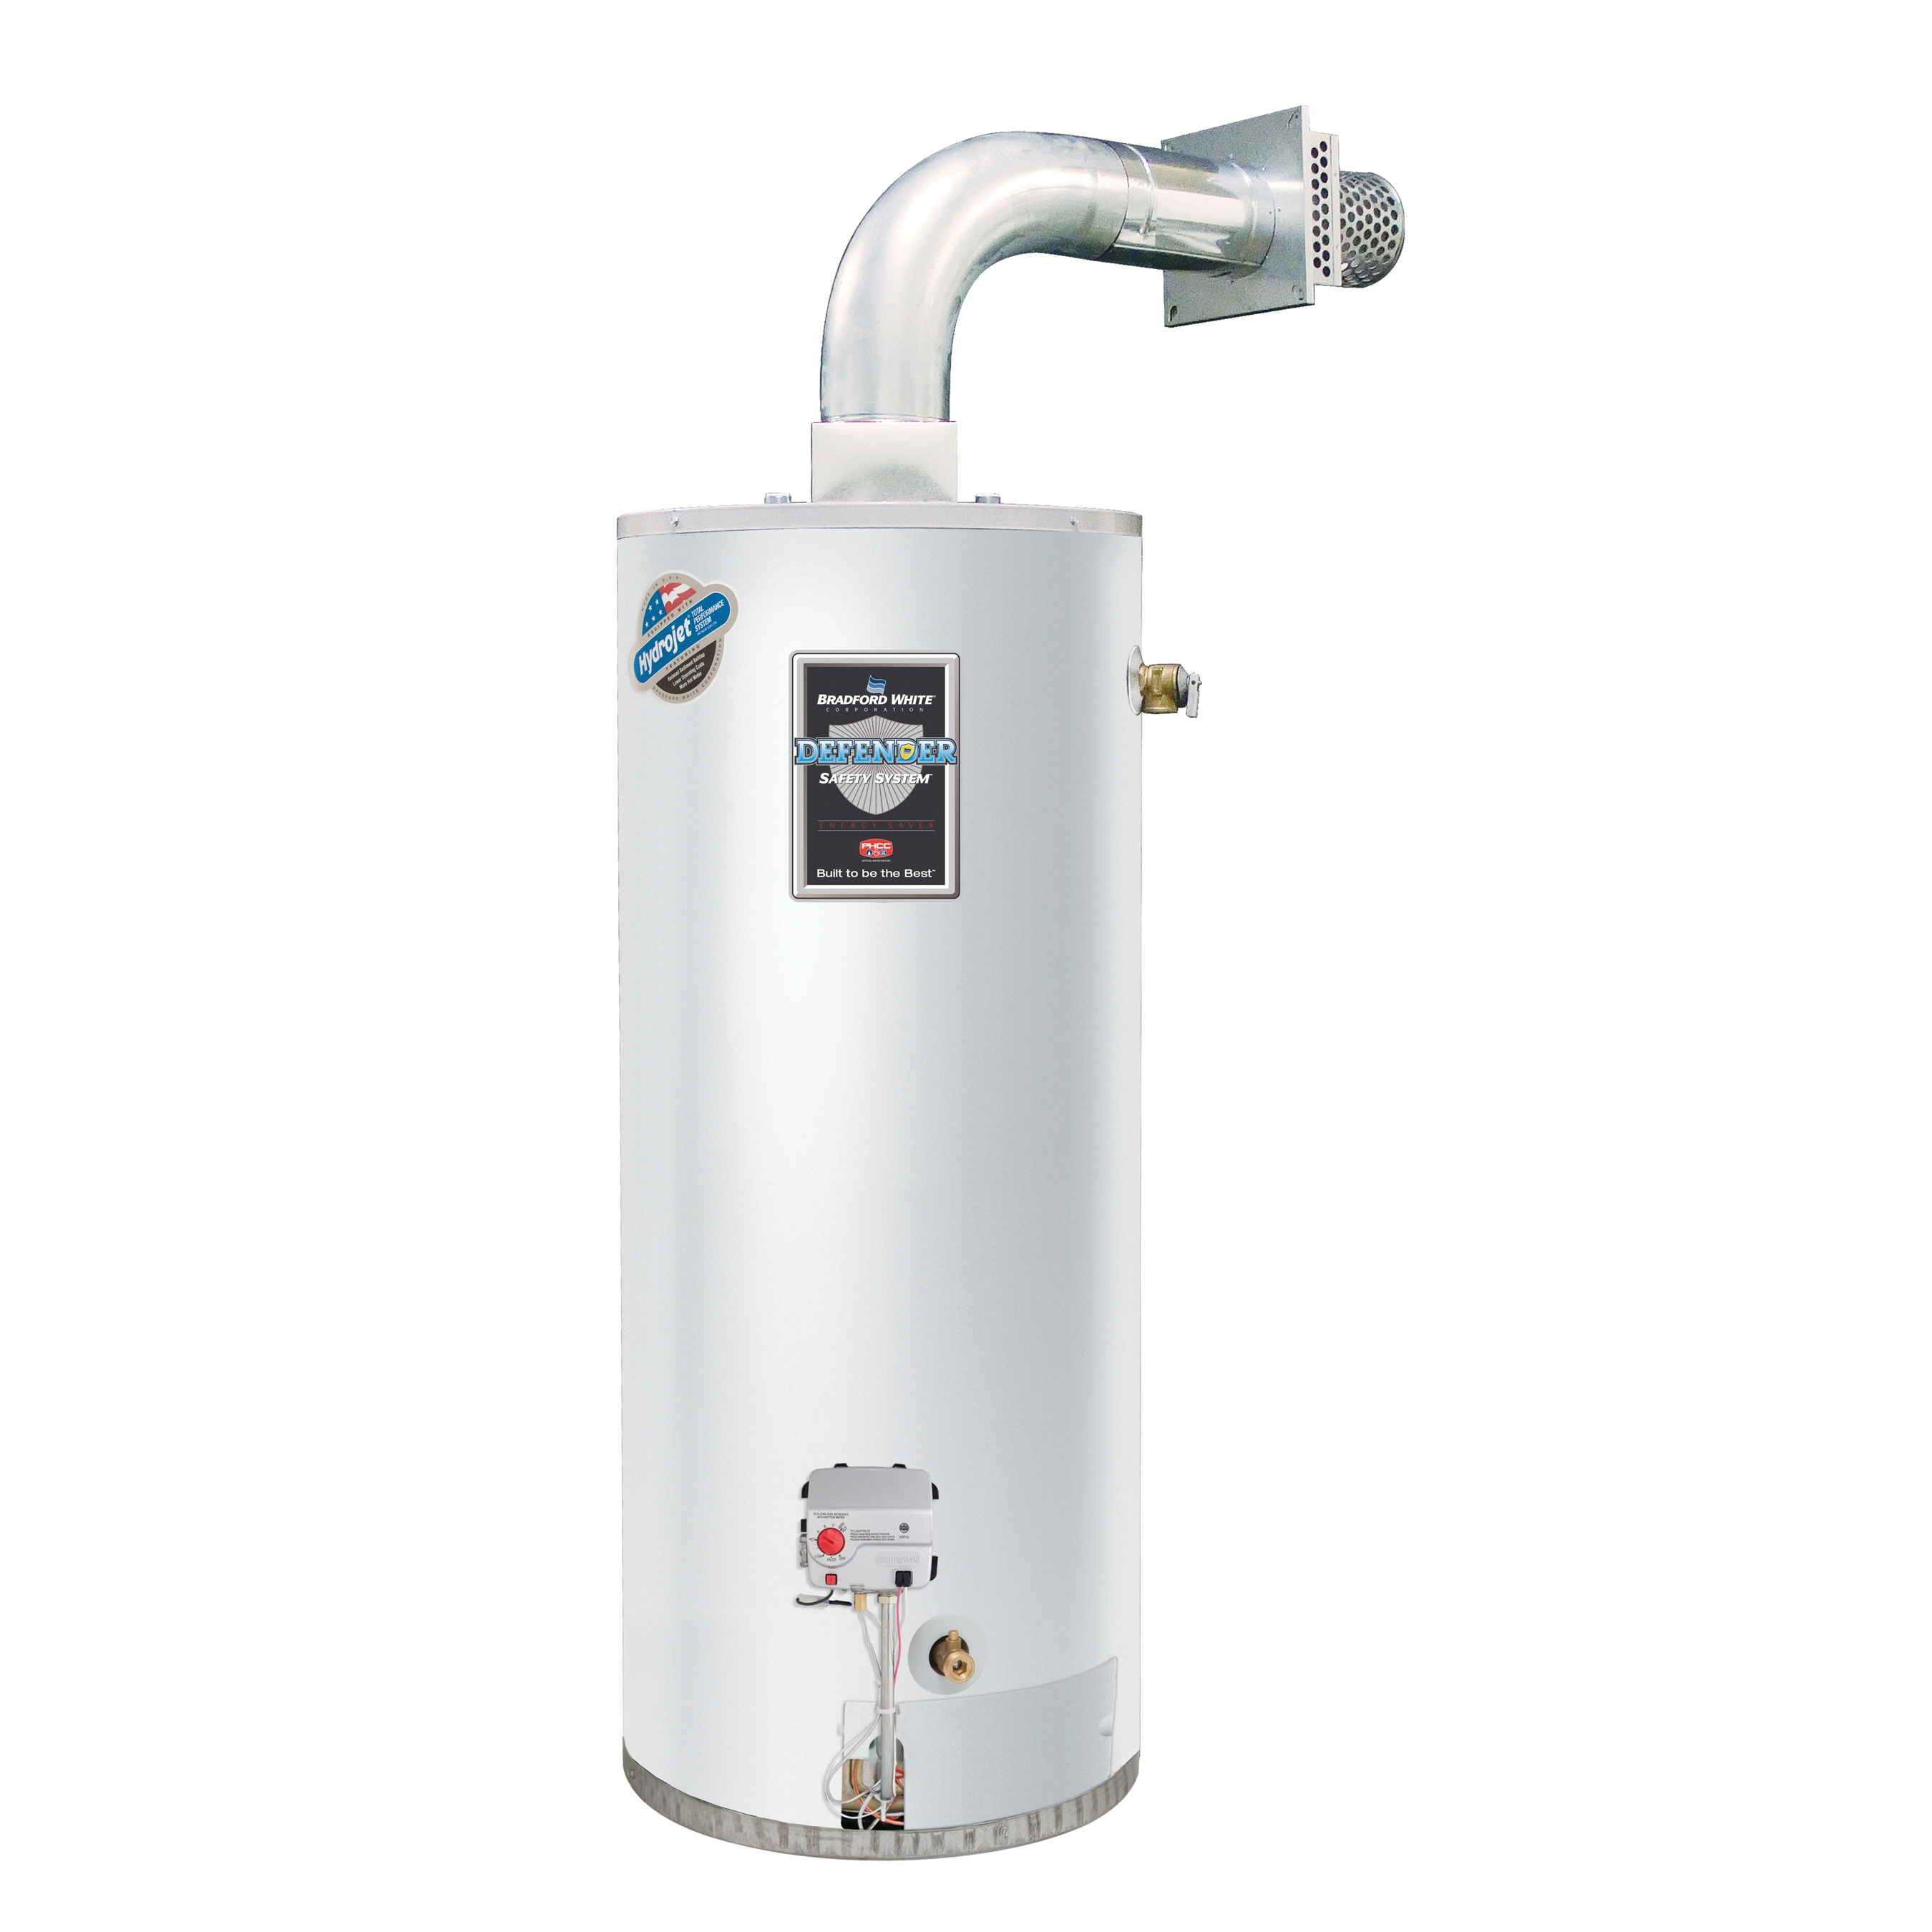 Bradford White® Defender Safety System® RG2DV50S6N-OLY Gas Water Heater, 42000 Btu/hr Heating, 50 gal Tank, Natural Gas Fuel, Direct Vent, 45 gph Recovery, Ultra Low NOx: No, Domestic